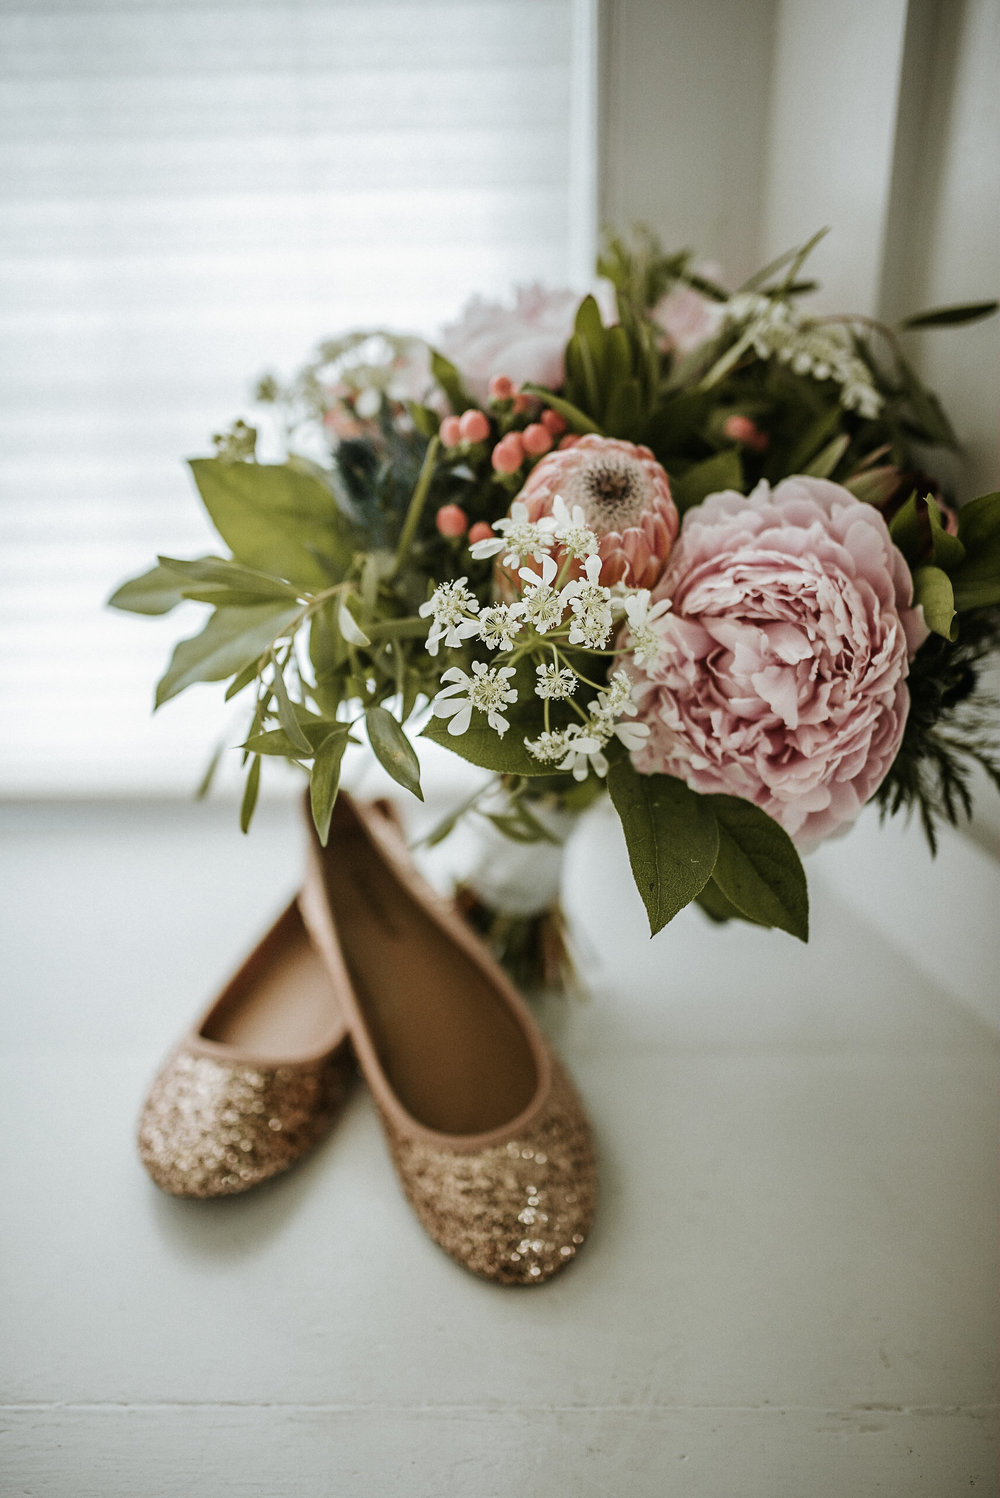 Bride's bouquet and shoes